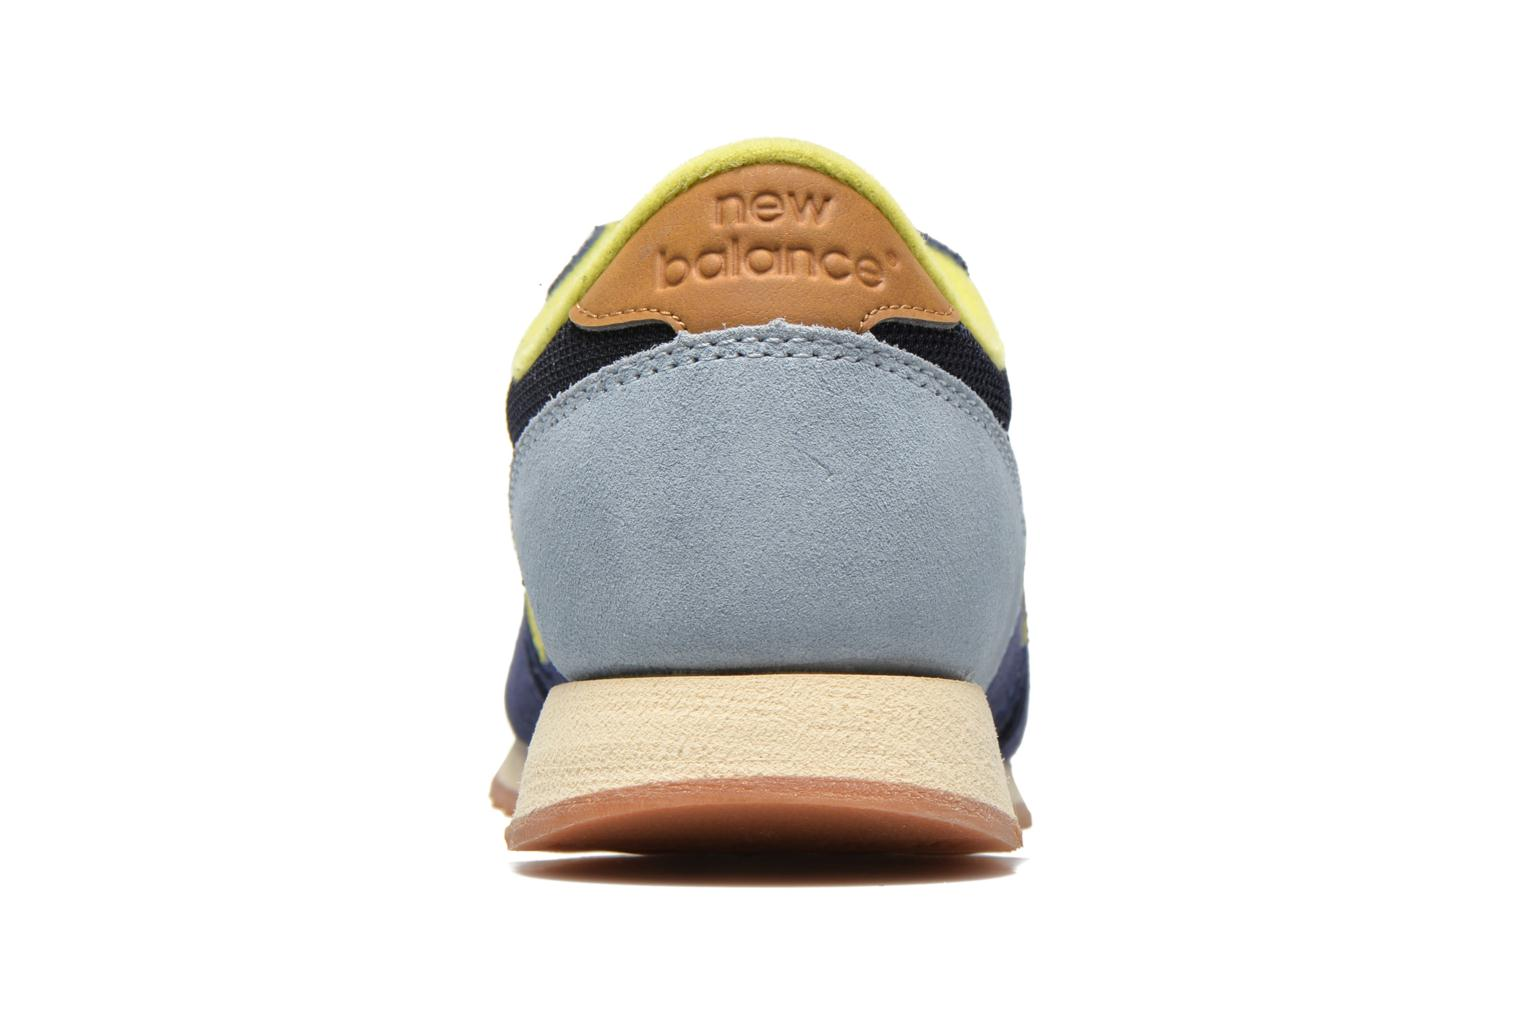 CW620 Blue/grey